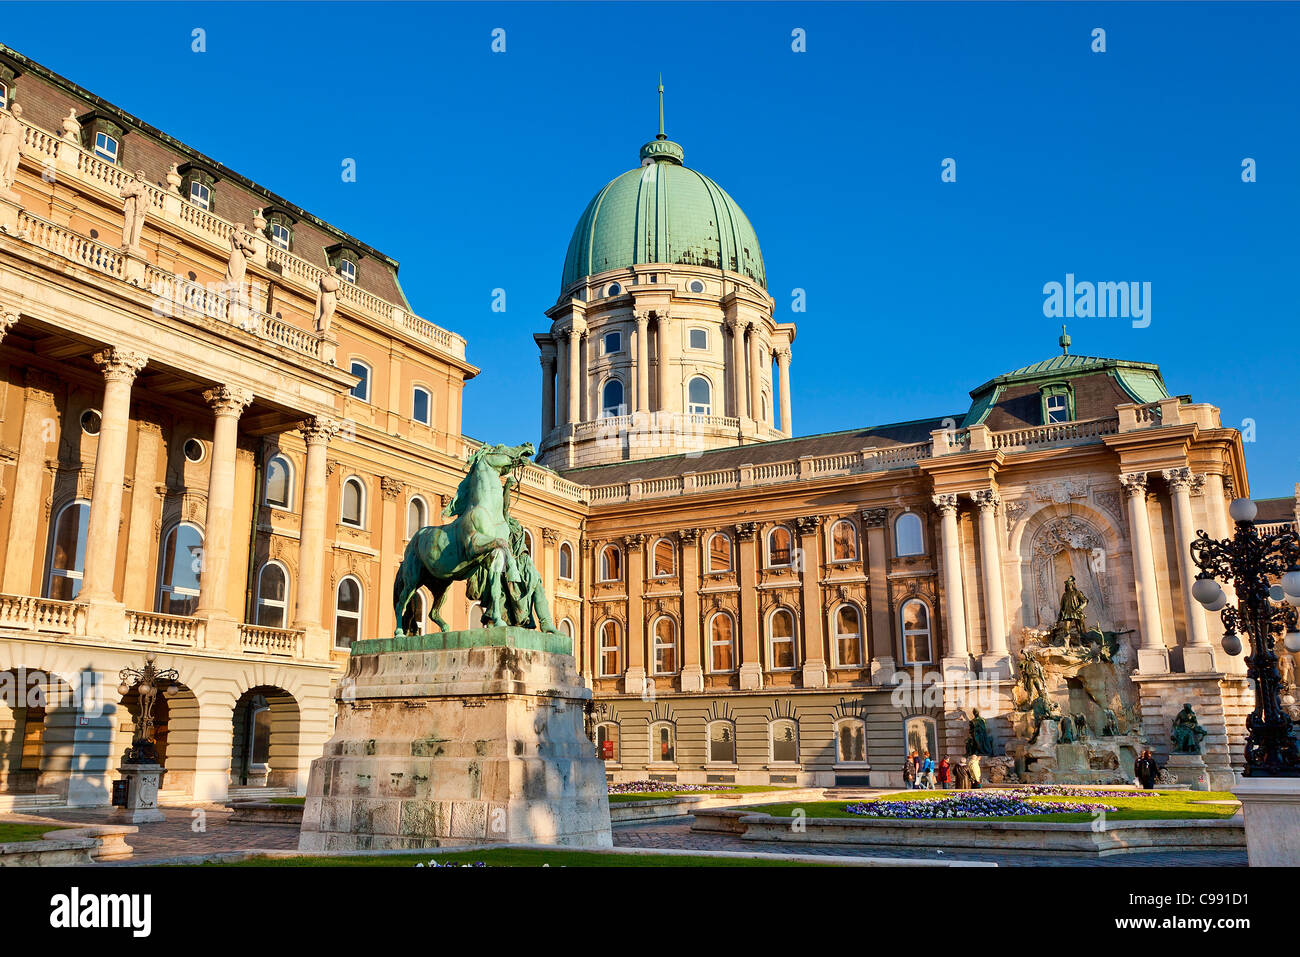 Budapest, Statue of the horseherd Front of Royal Palace - Stock Image